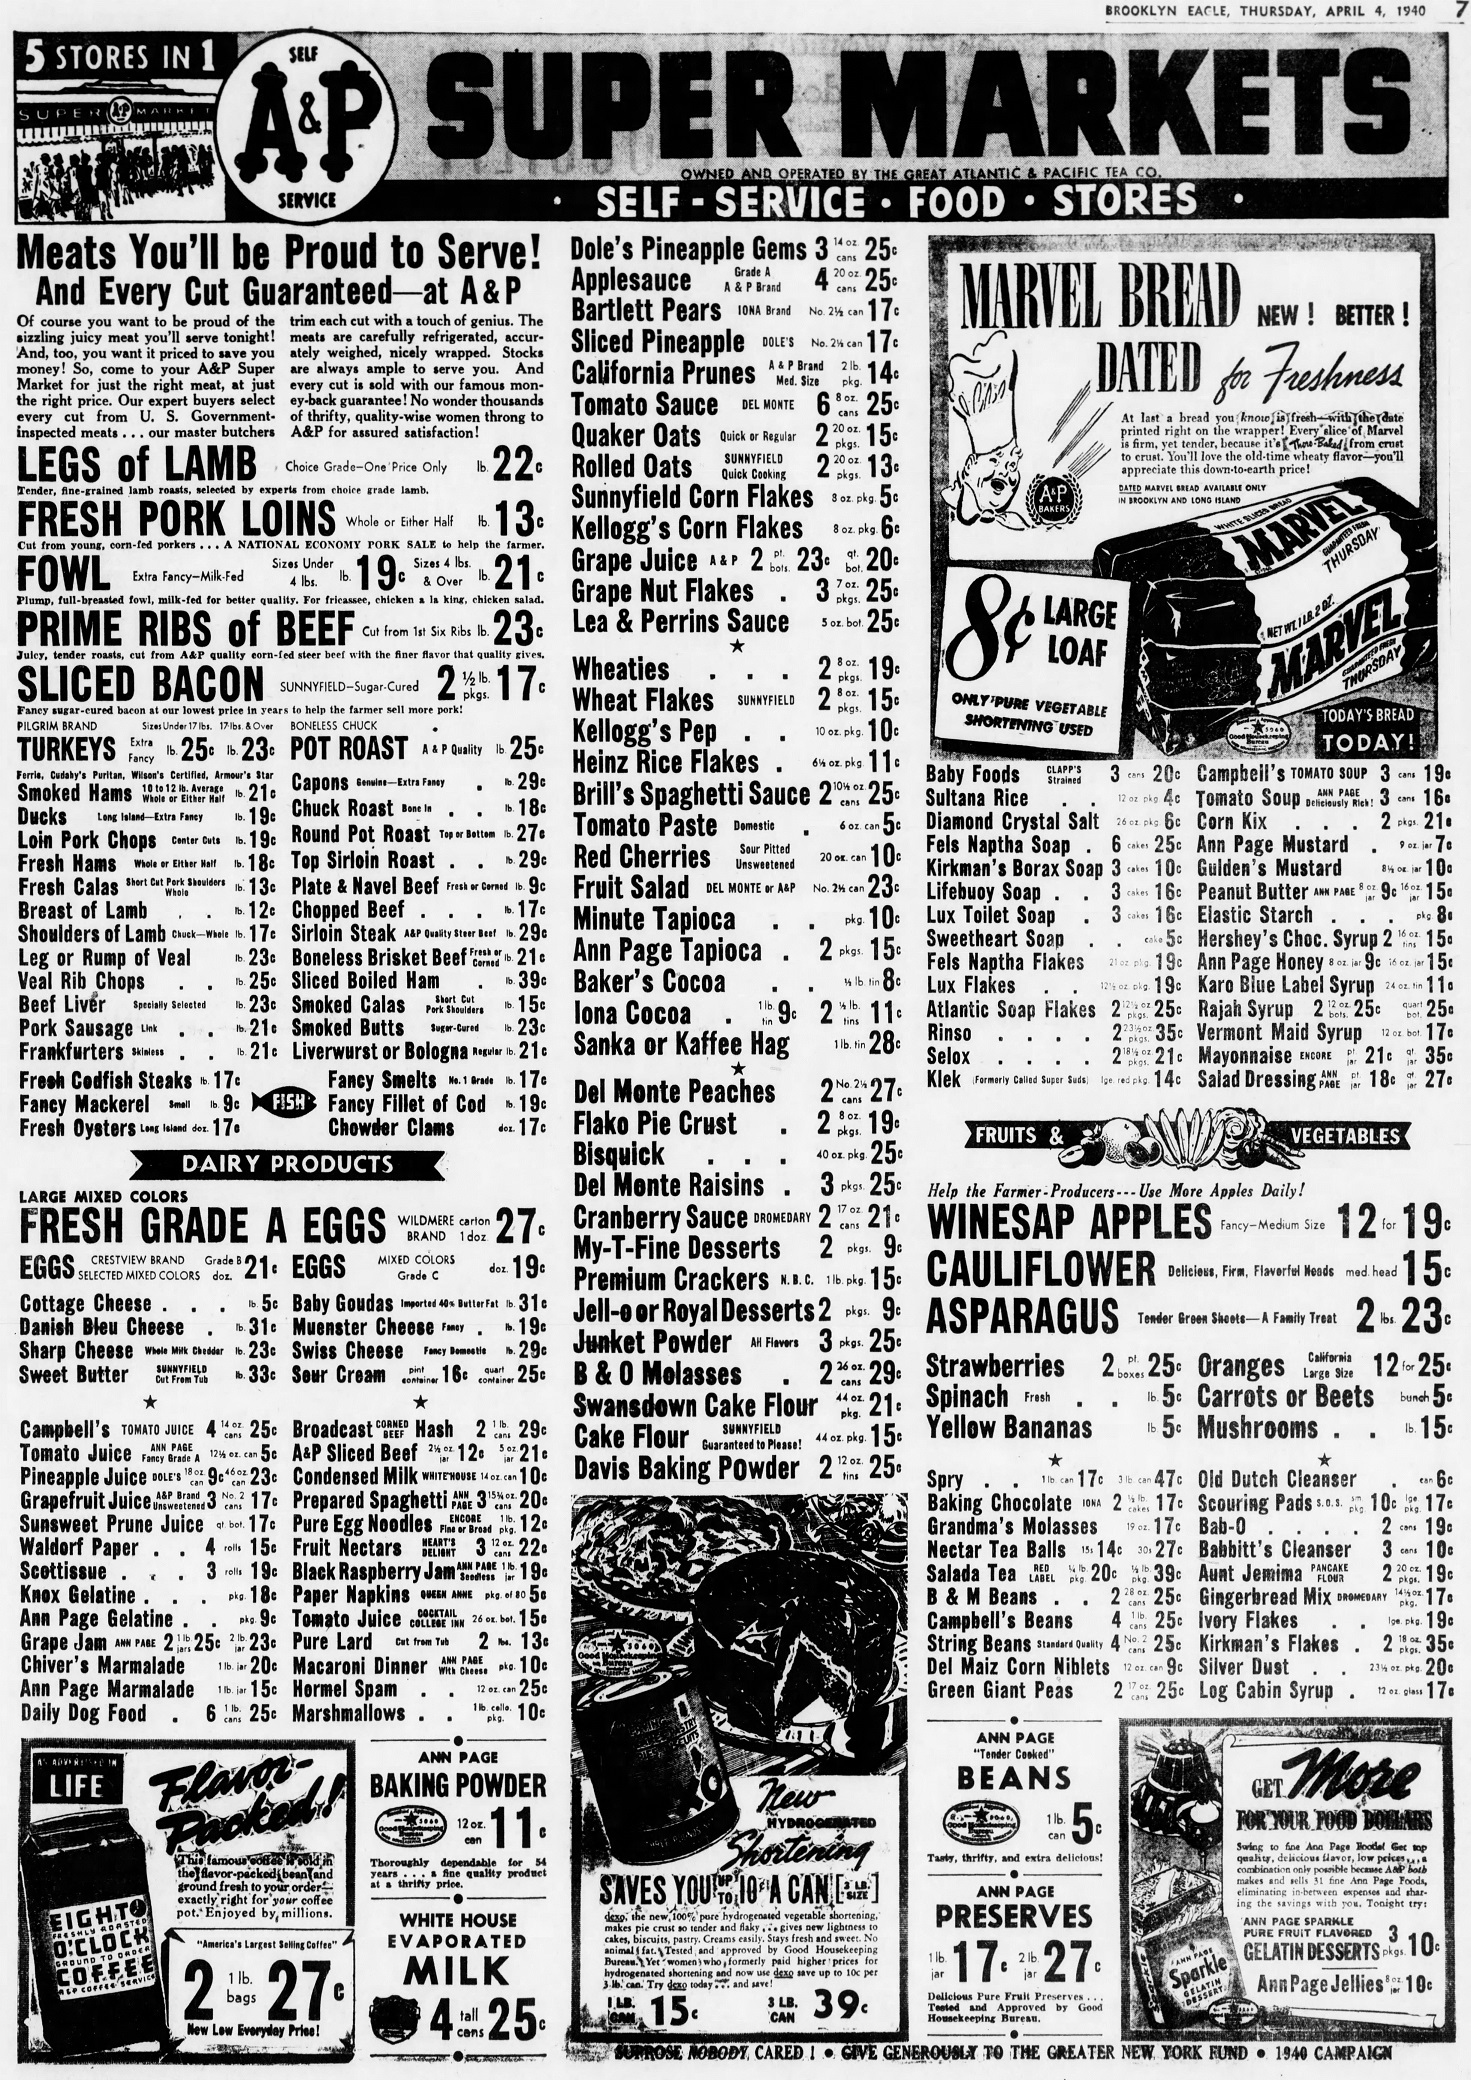 The_Brooklyn_Daily_Eagle_Thu__Apr_4__1940_(2).jpg